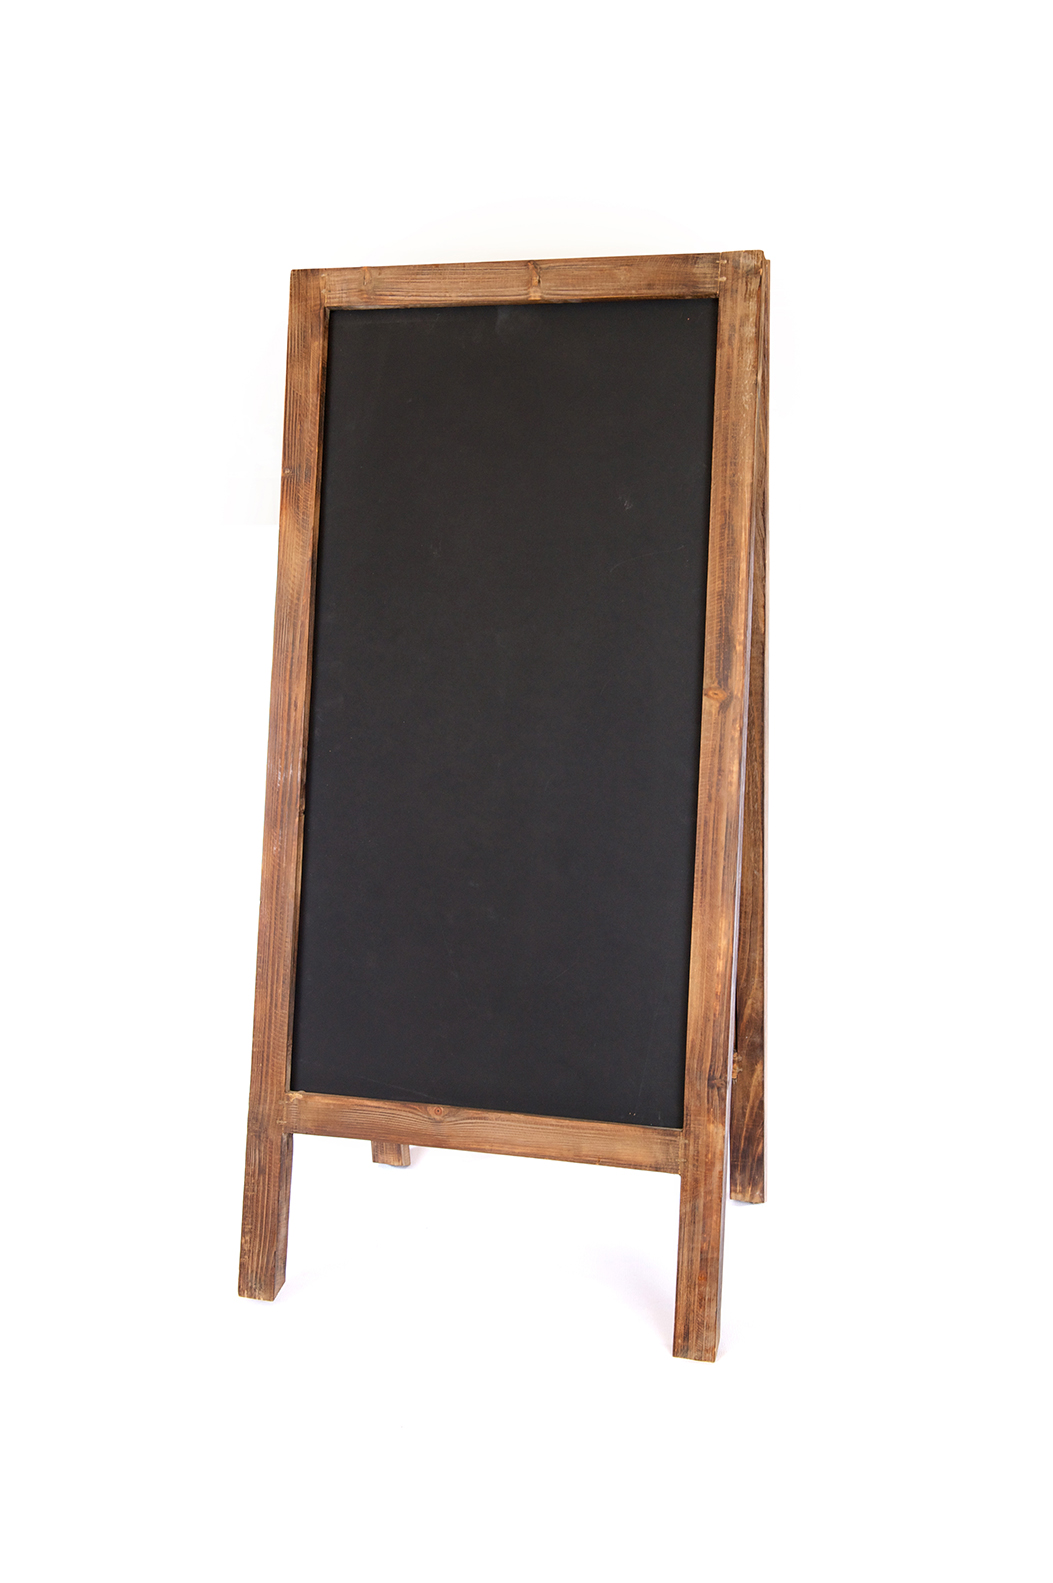 large blackboard miss maggiesmiss maggies